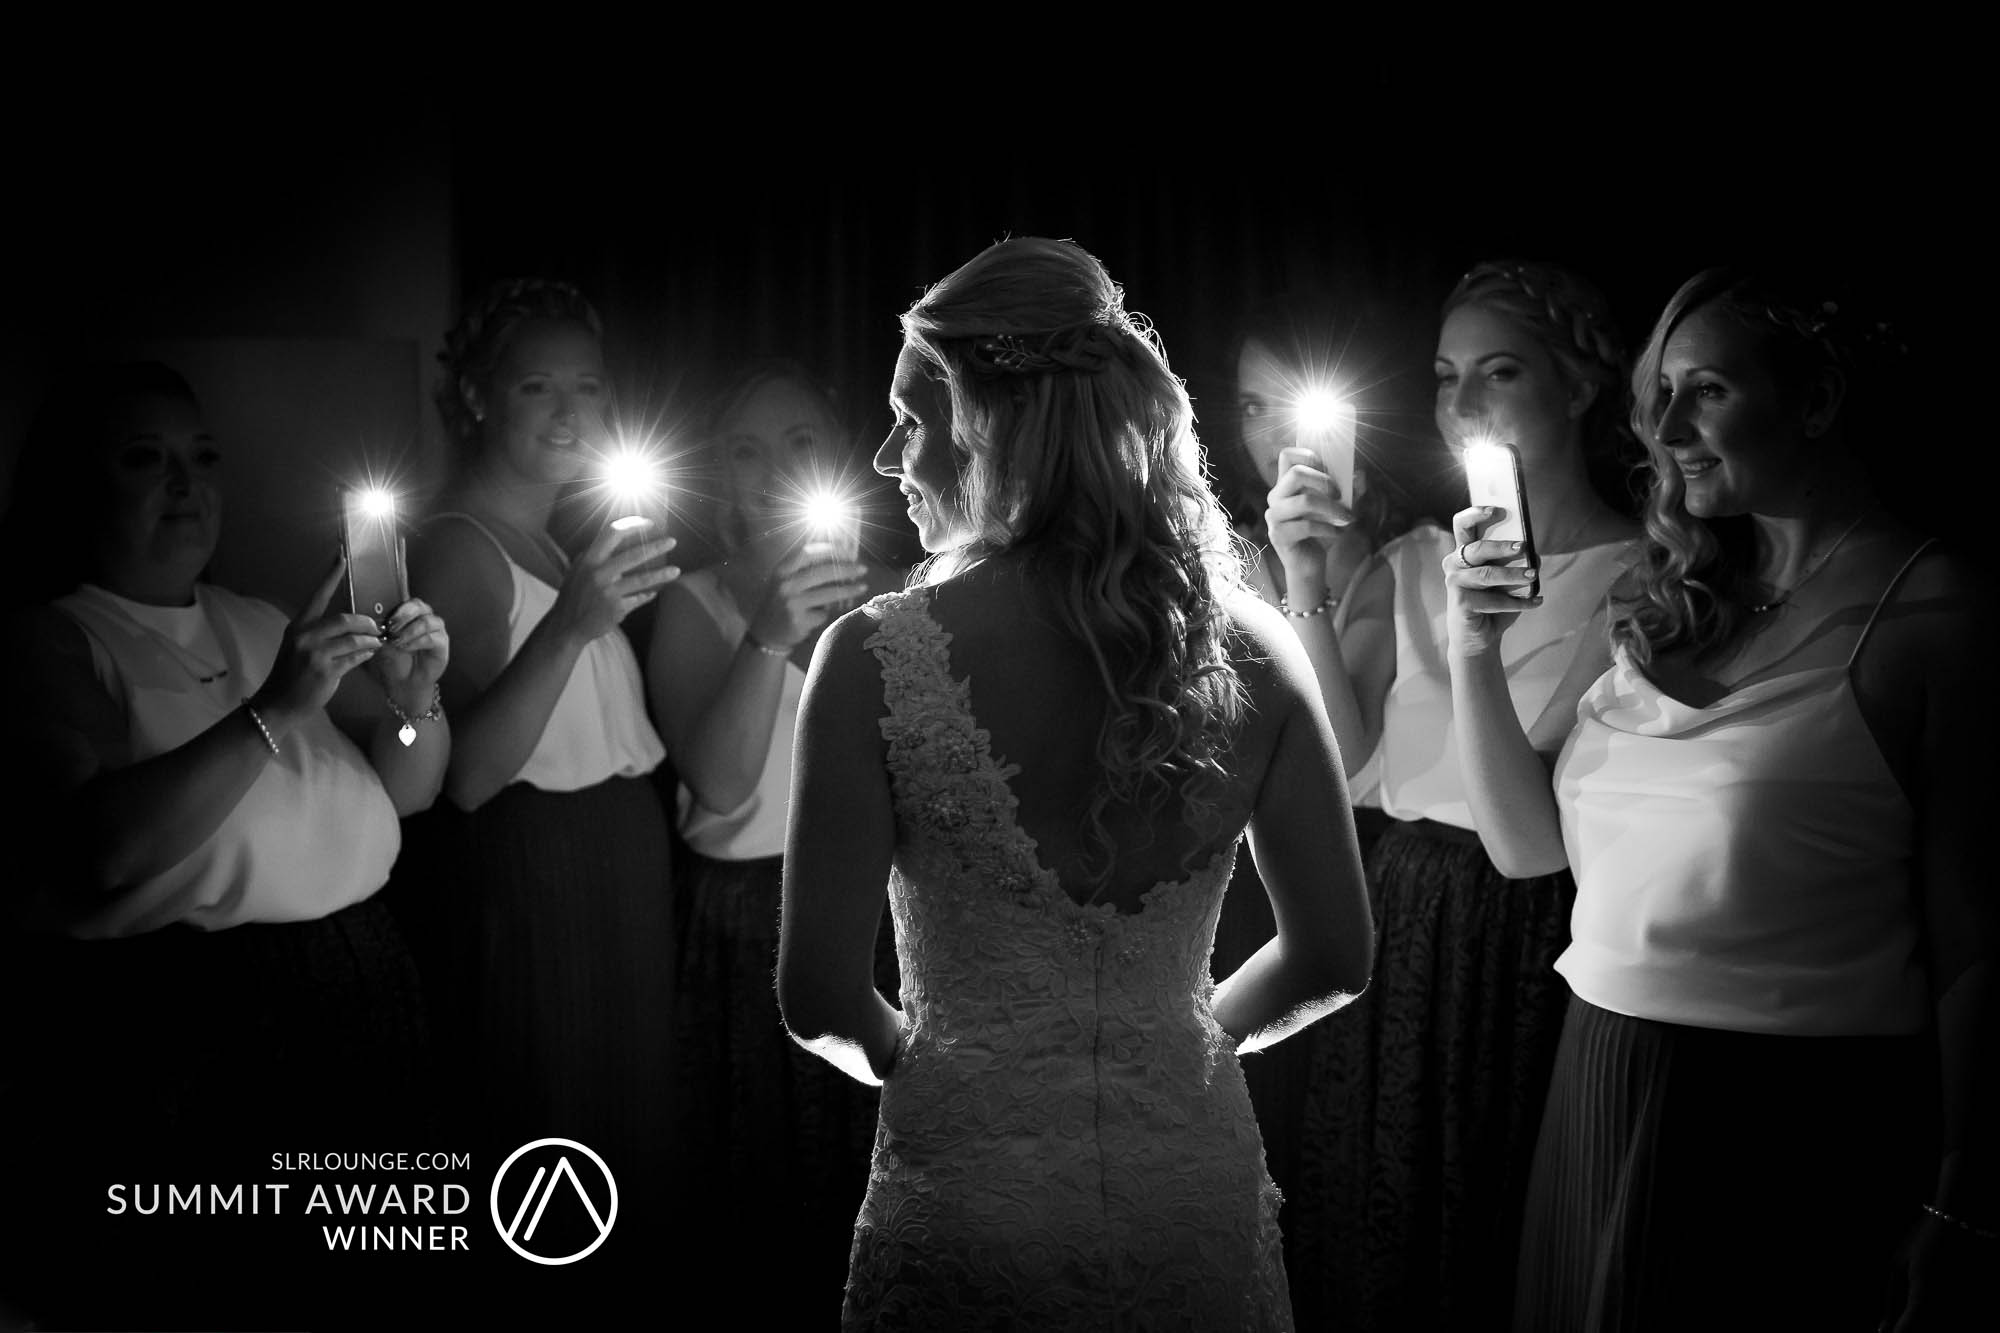 SLR Lounge's Summit Award winning image. Creative wedding photograph of the bride being light up by her bridesmaids taking photos of her using their mobile phones. Photo by Newcastle based wedding photographer, Elliot Nichol, photographing weddings across the UK and the EU.